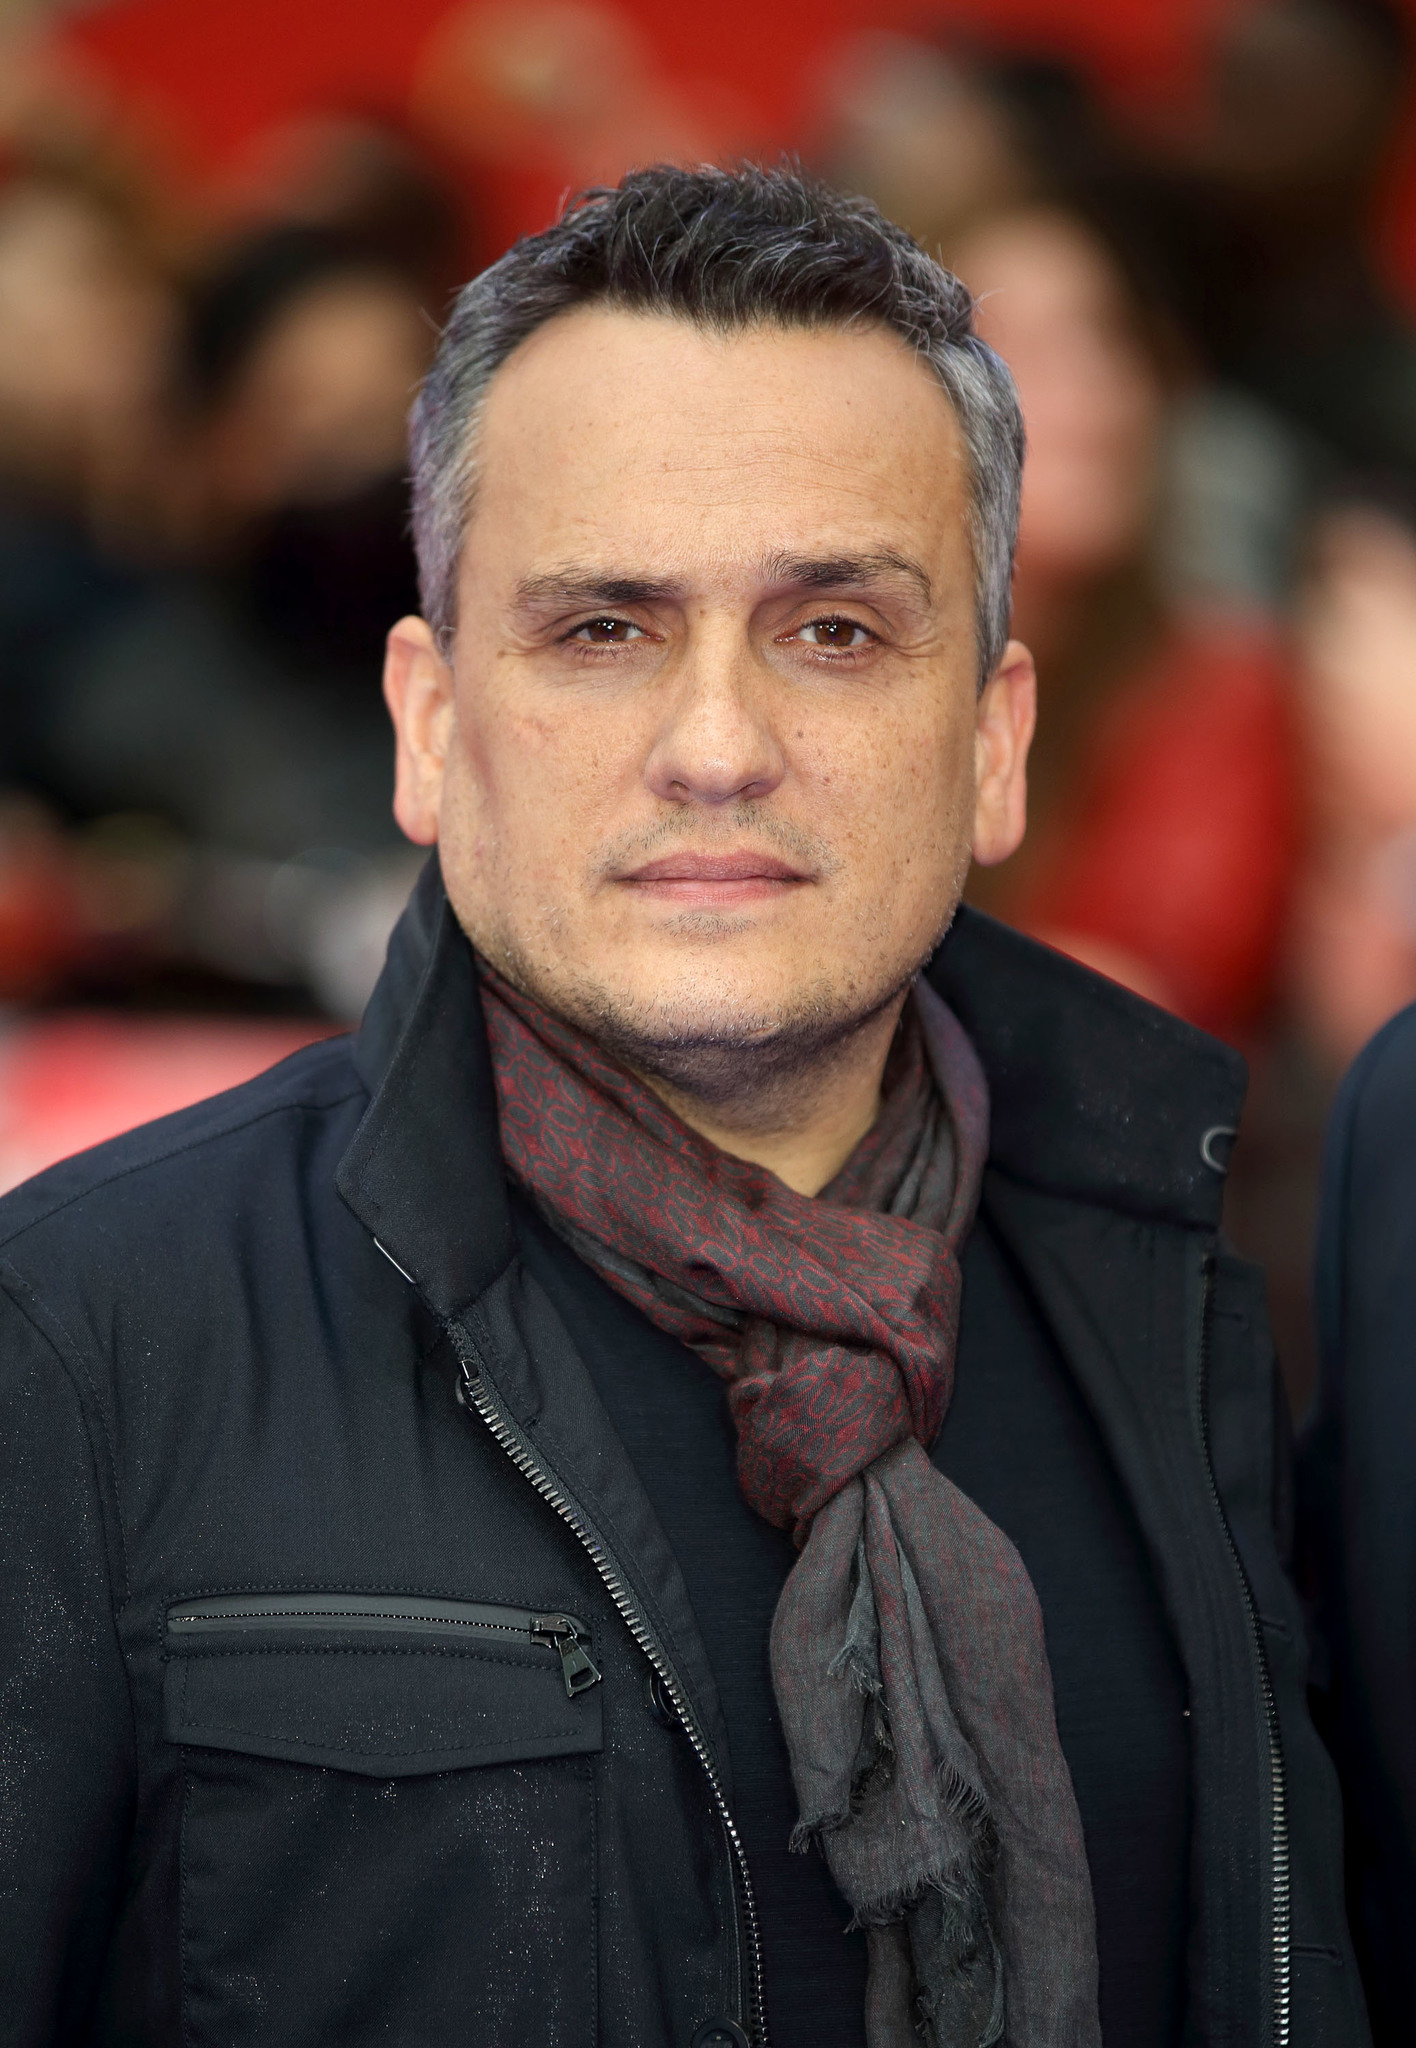 The 49-year old son of father (?) and mother(?) Joe Russo in 2020 photo. Joe Russo earned a  million dollar salary - leaving the net worth at  million in 2020